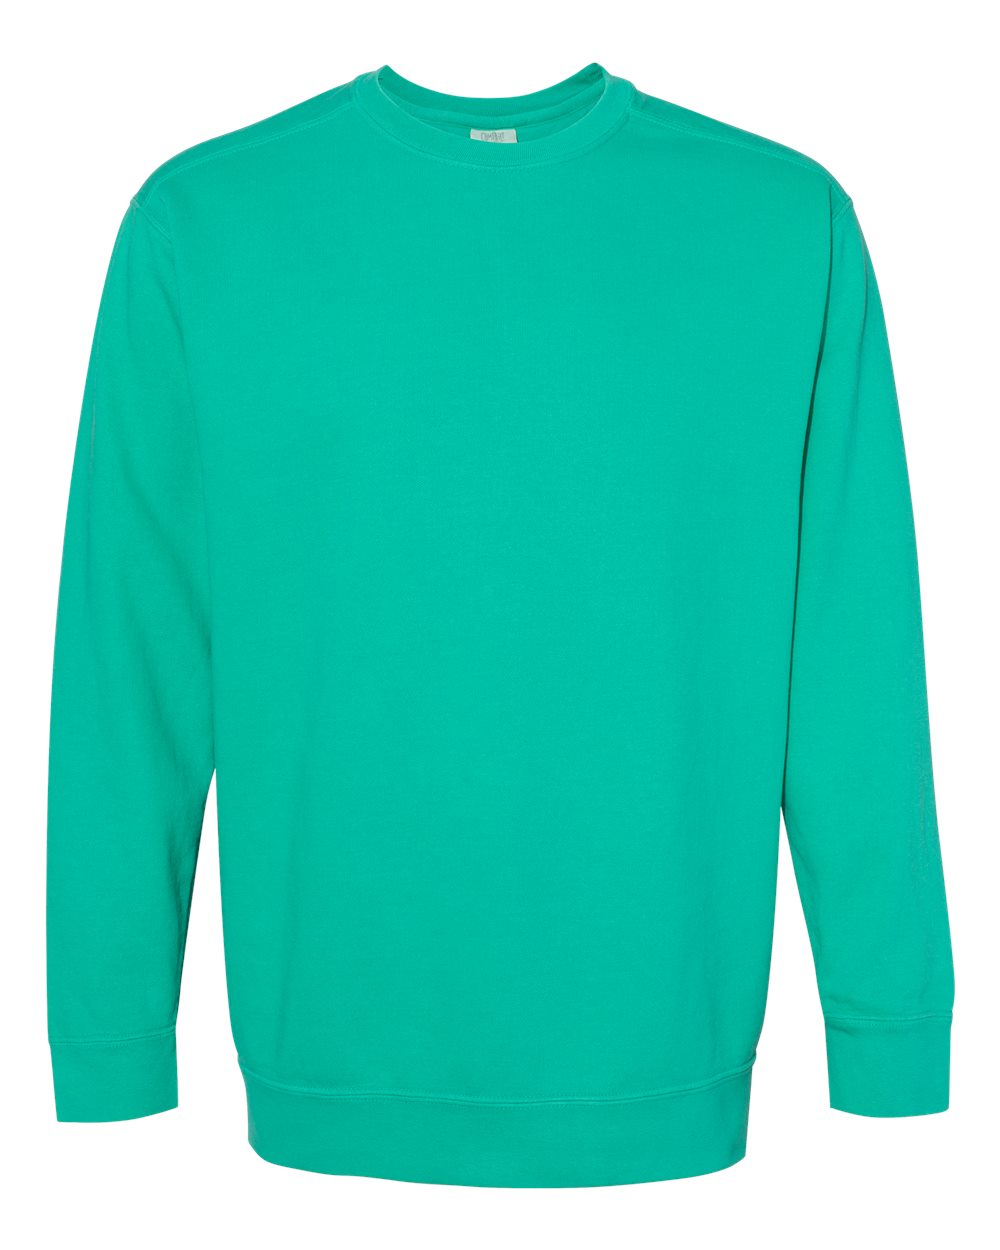 Comfort-Colors-Mens-Garment-Dyed-Ringspun-Crewneck-Sweatshirt-1566-up-to-3XL miniature 39